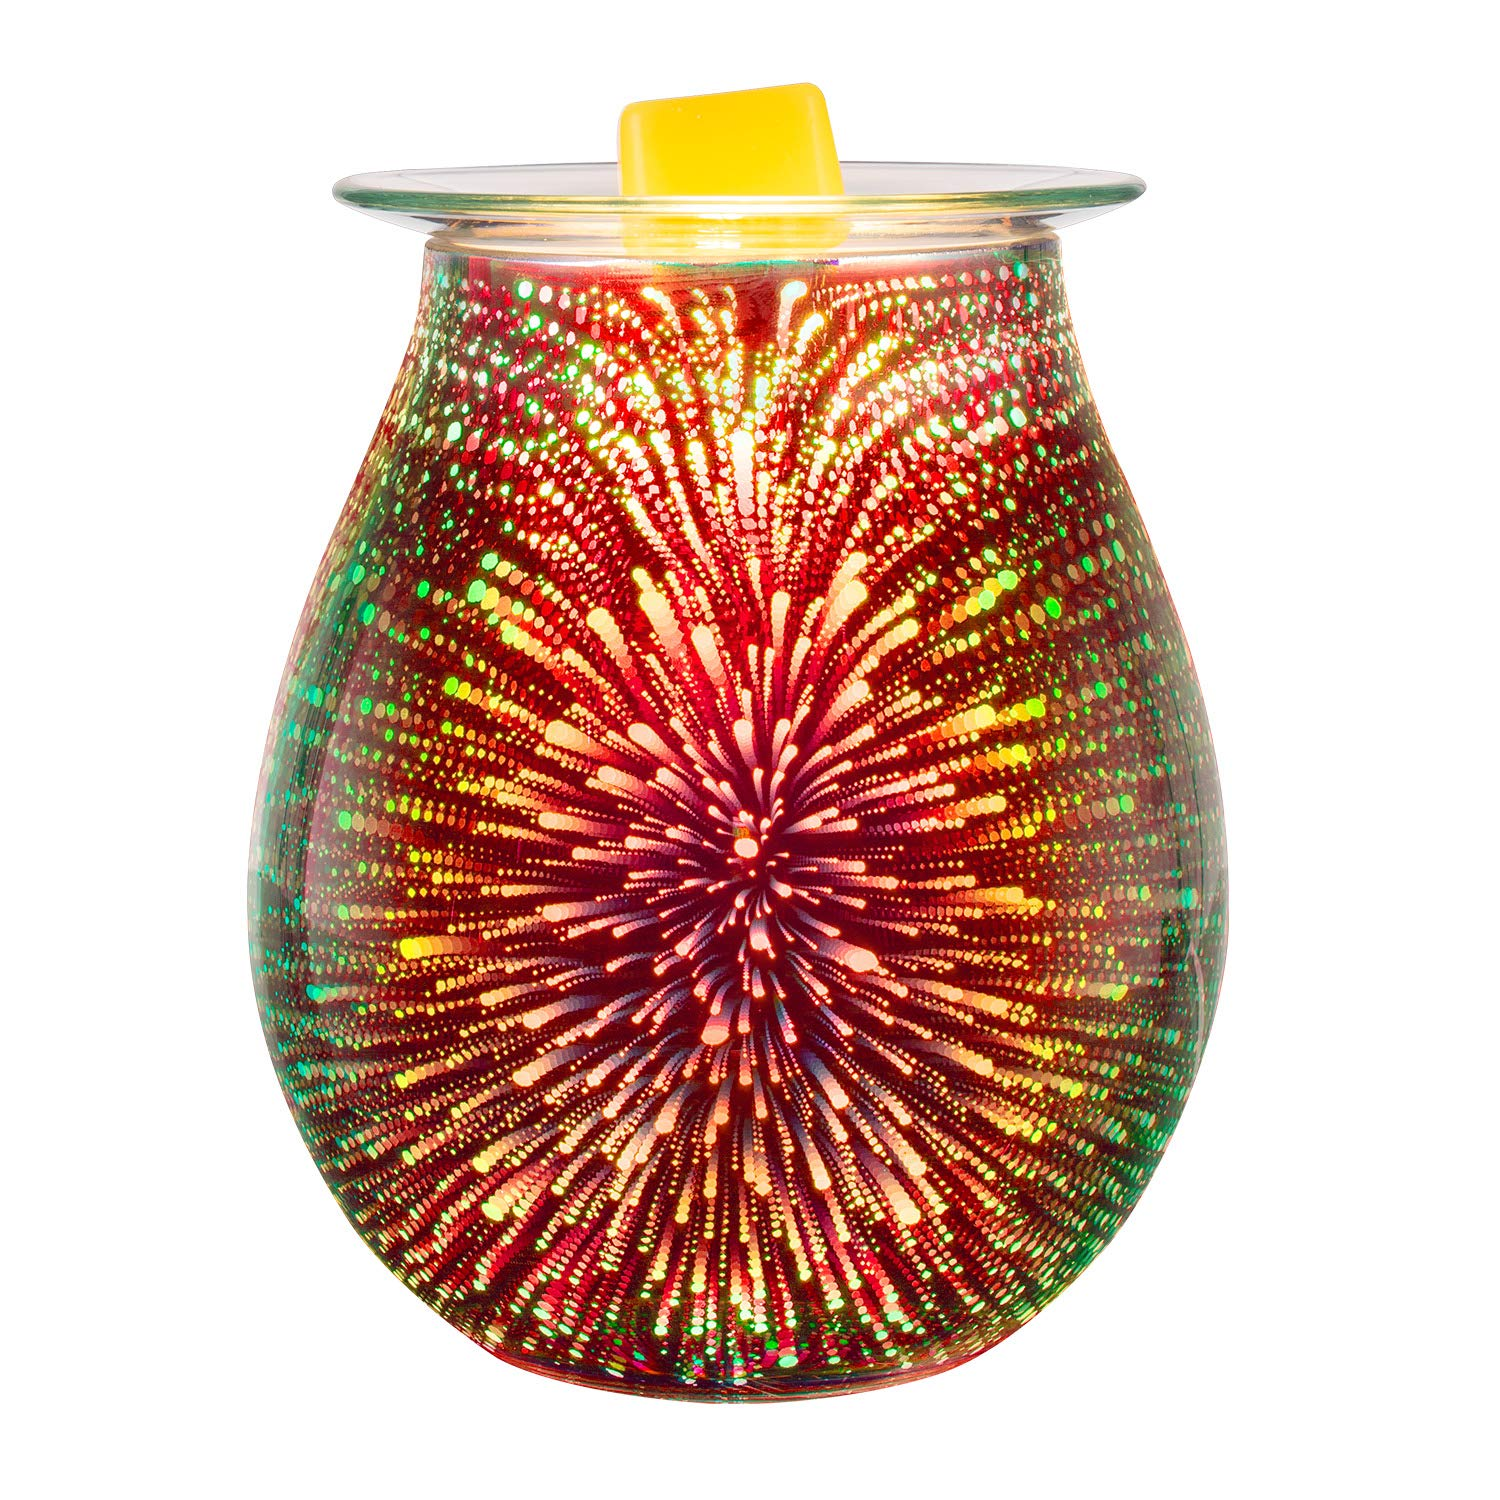 Electric Oil Warmer 3D Effect Fireworks Glass Wax Burner Incense Oil Warmer Night Light Aroma Decorative Lamp for Gifts & Decor for Home Office